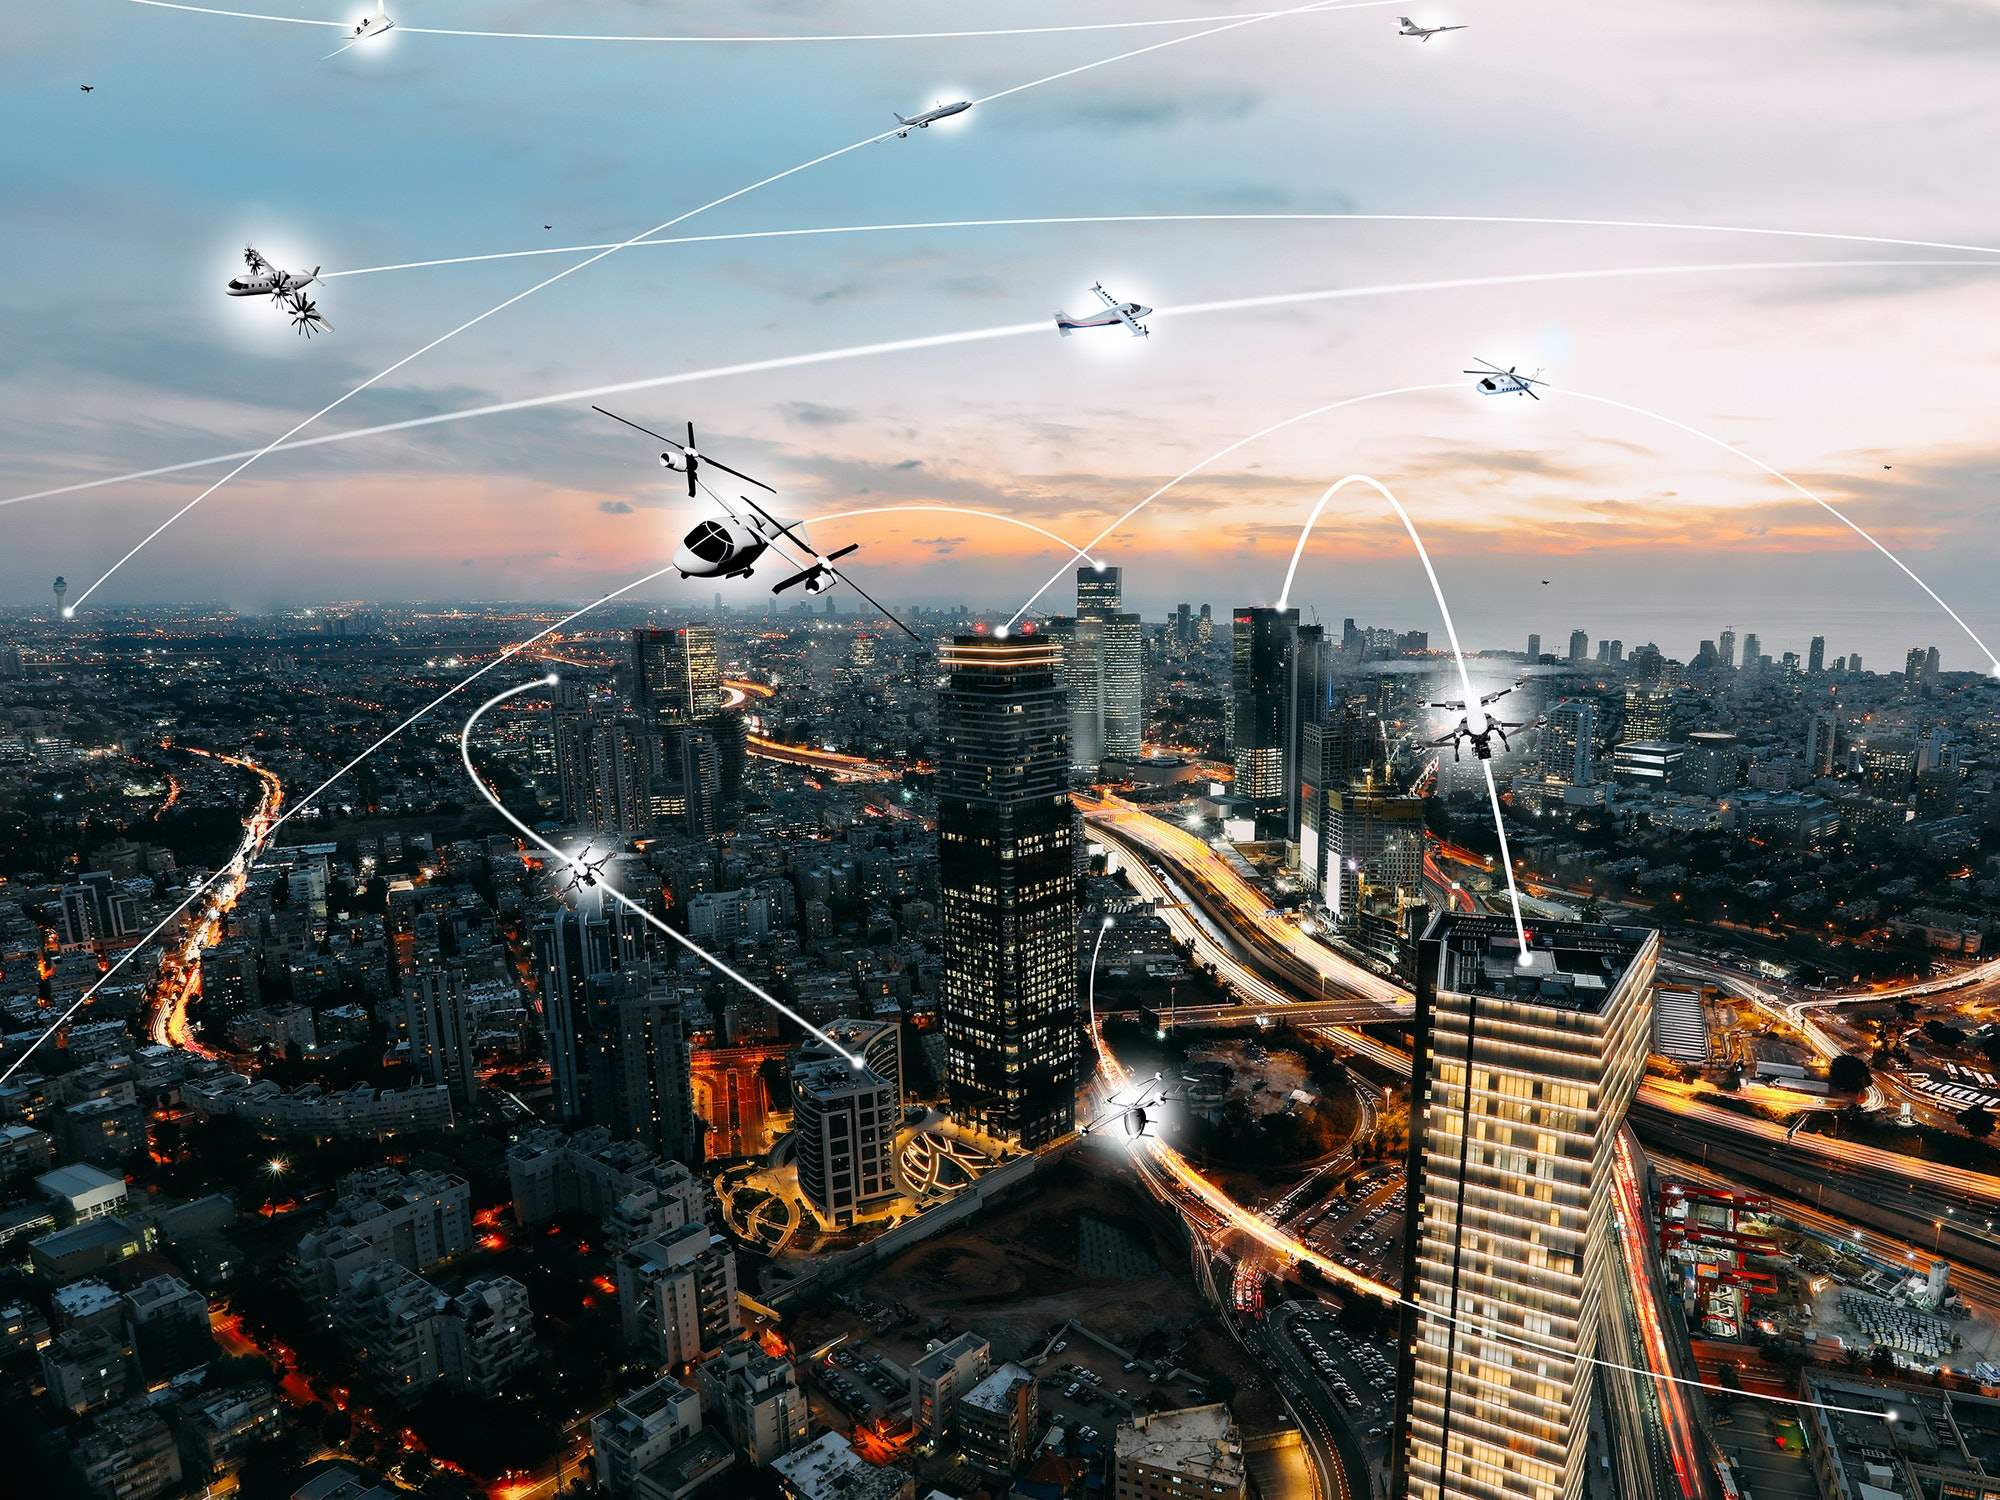 NASA's vision of what these flying cities could look like.